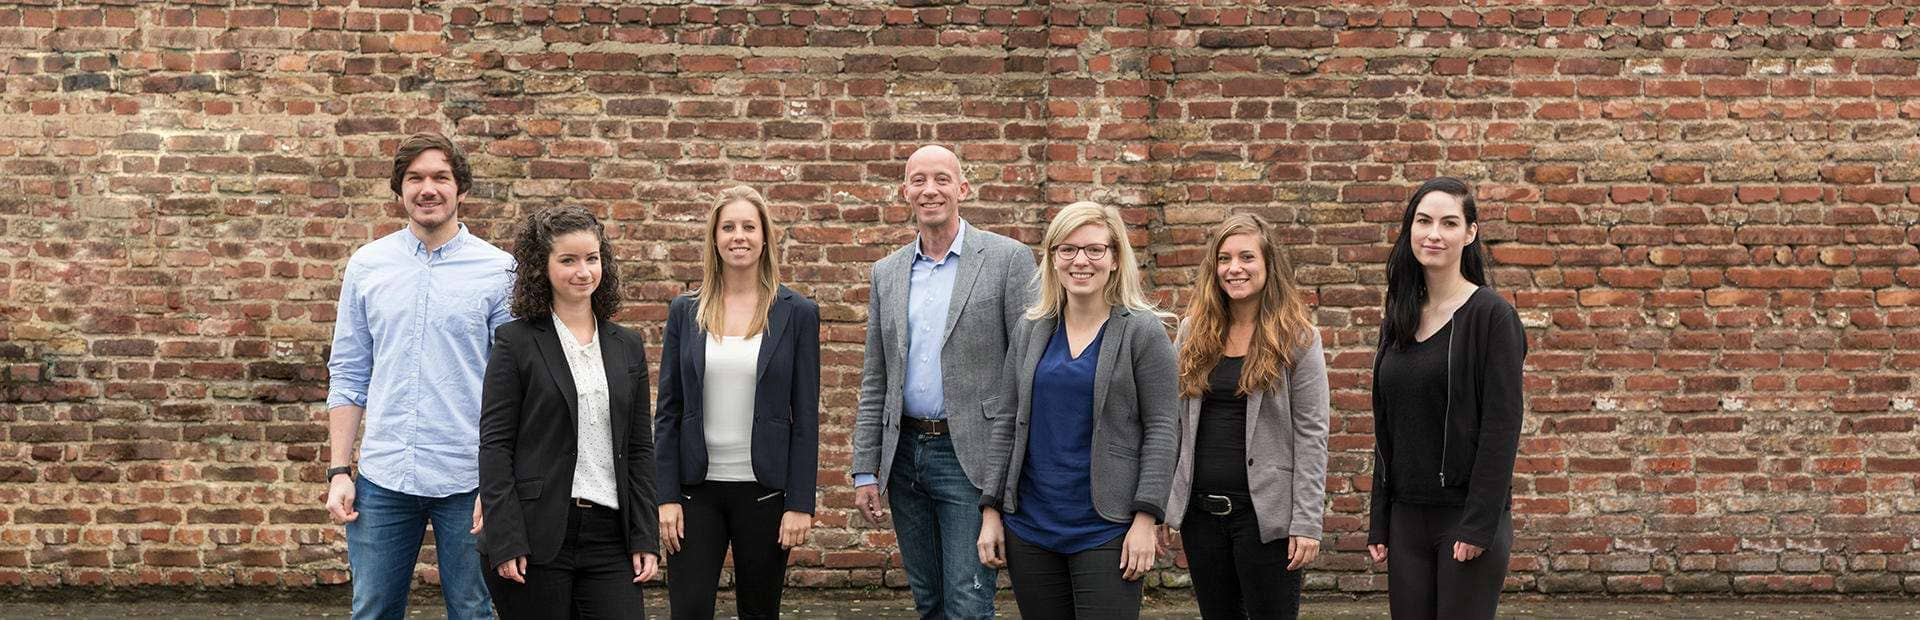 Teamfoto Puetter GmbH